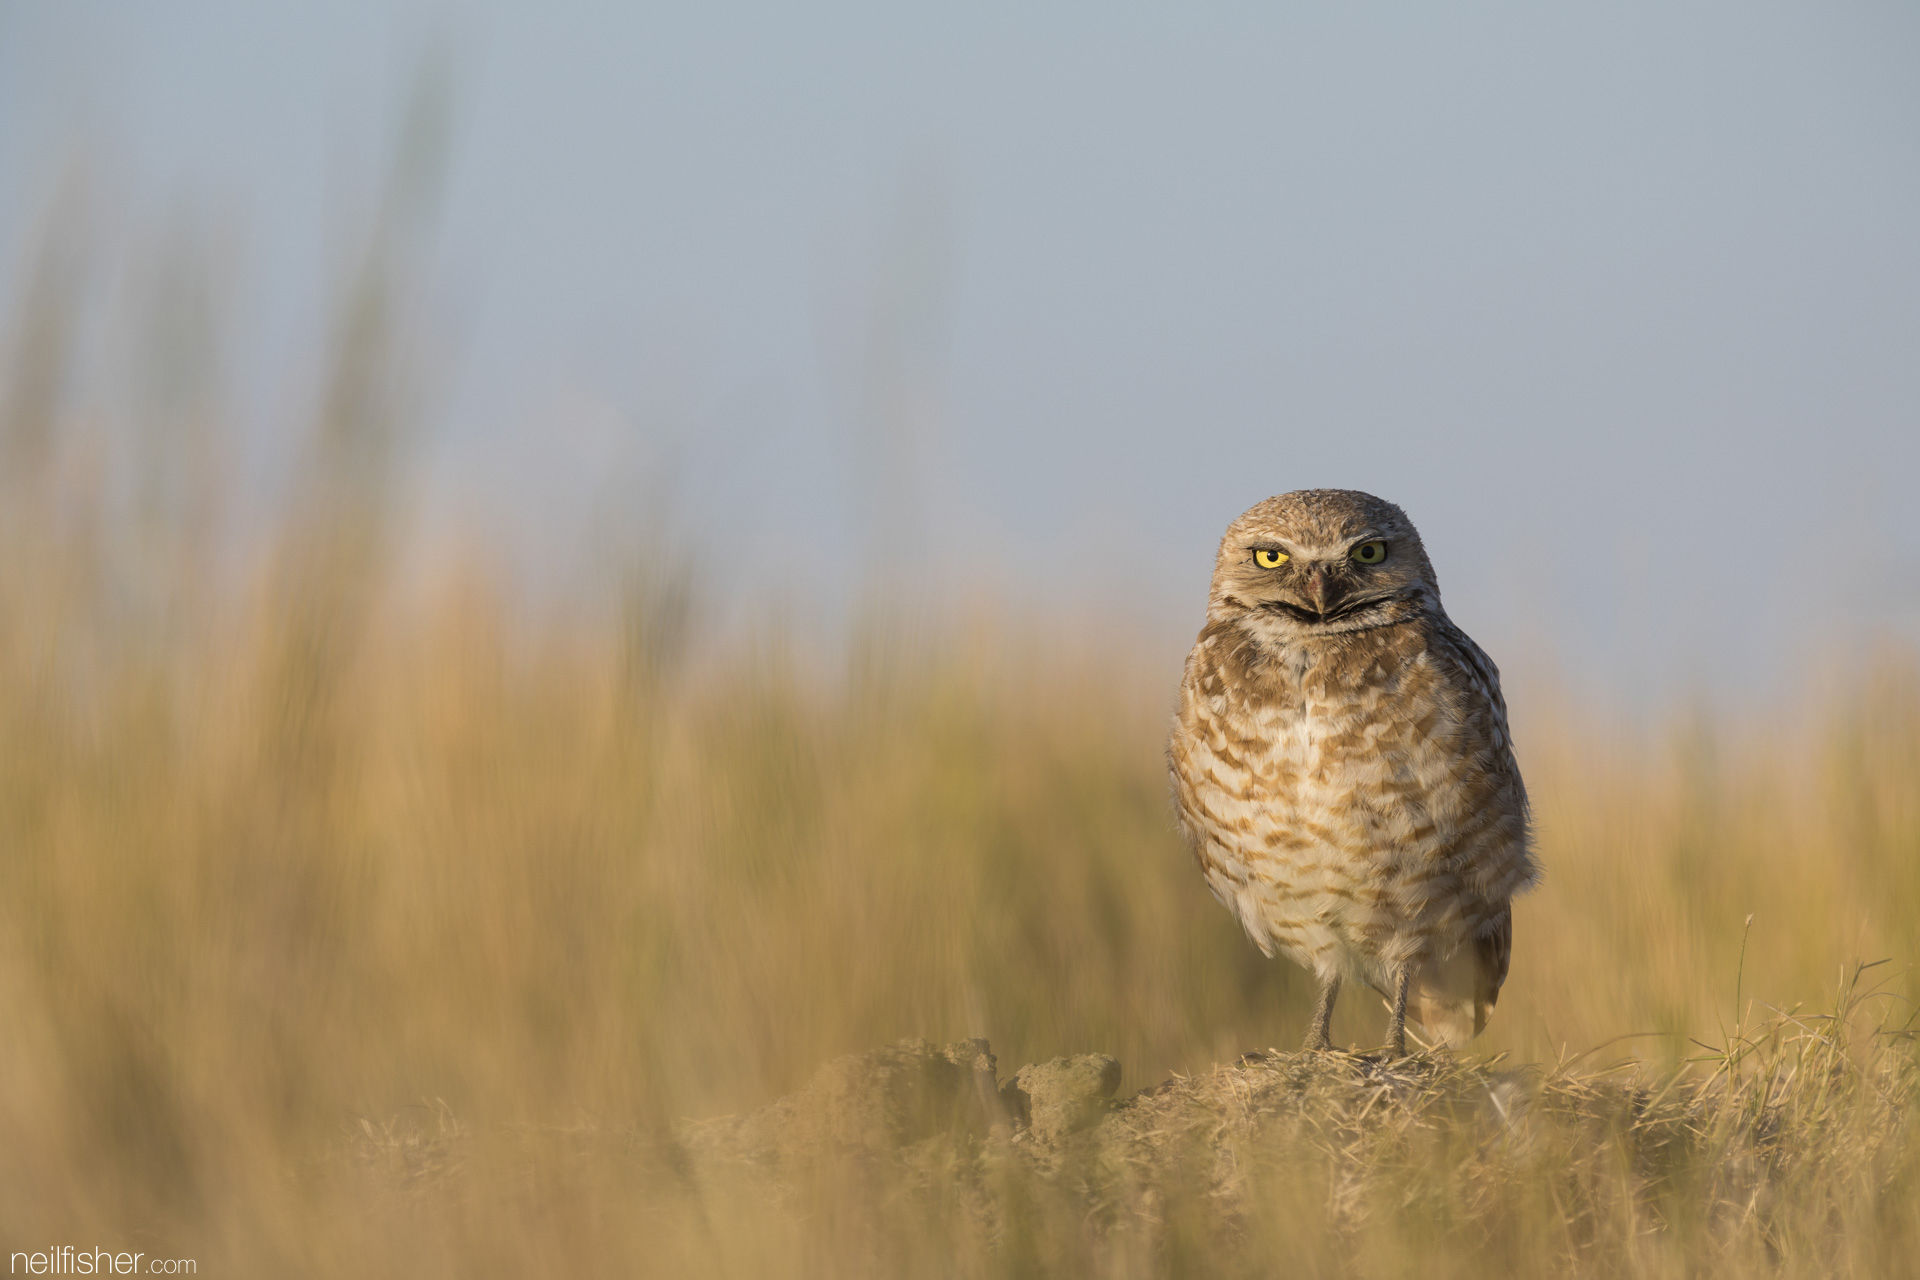 An adult male burrowing owl must provide food for his mate, his chicks and himself. A single owl family can eat 1,800 rodents and 7,000 insects in a summer.